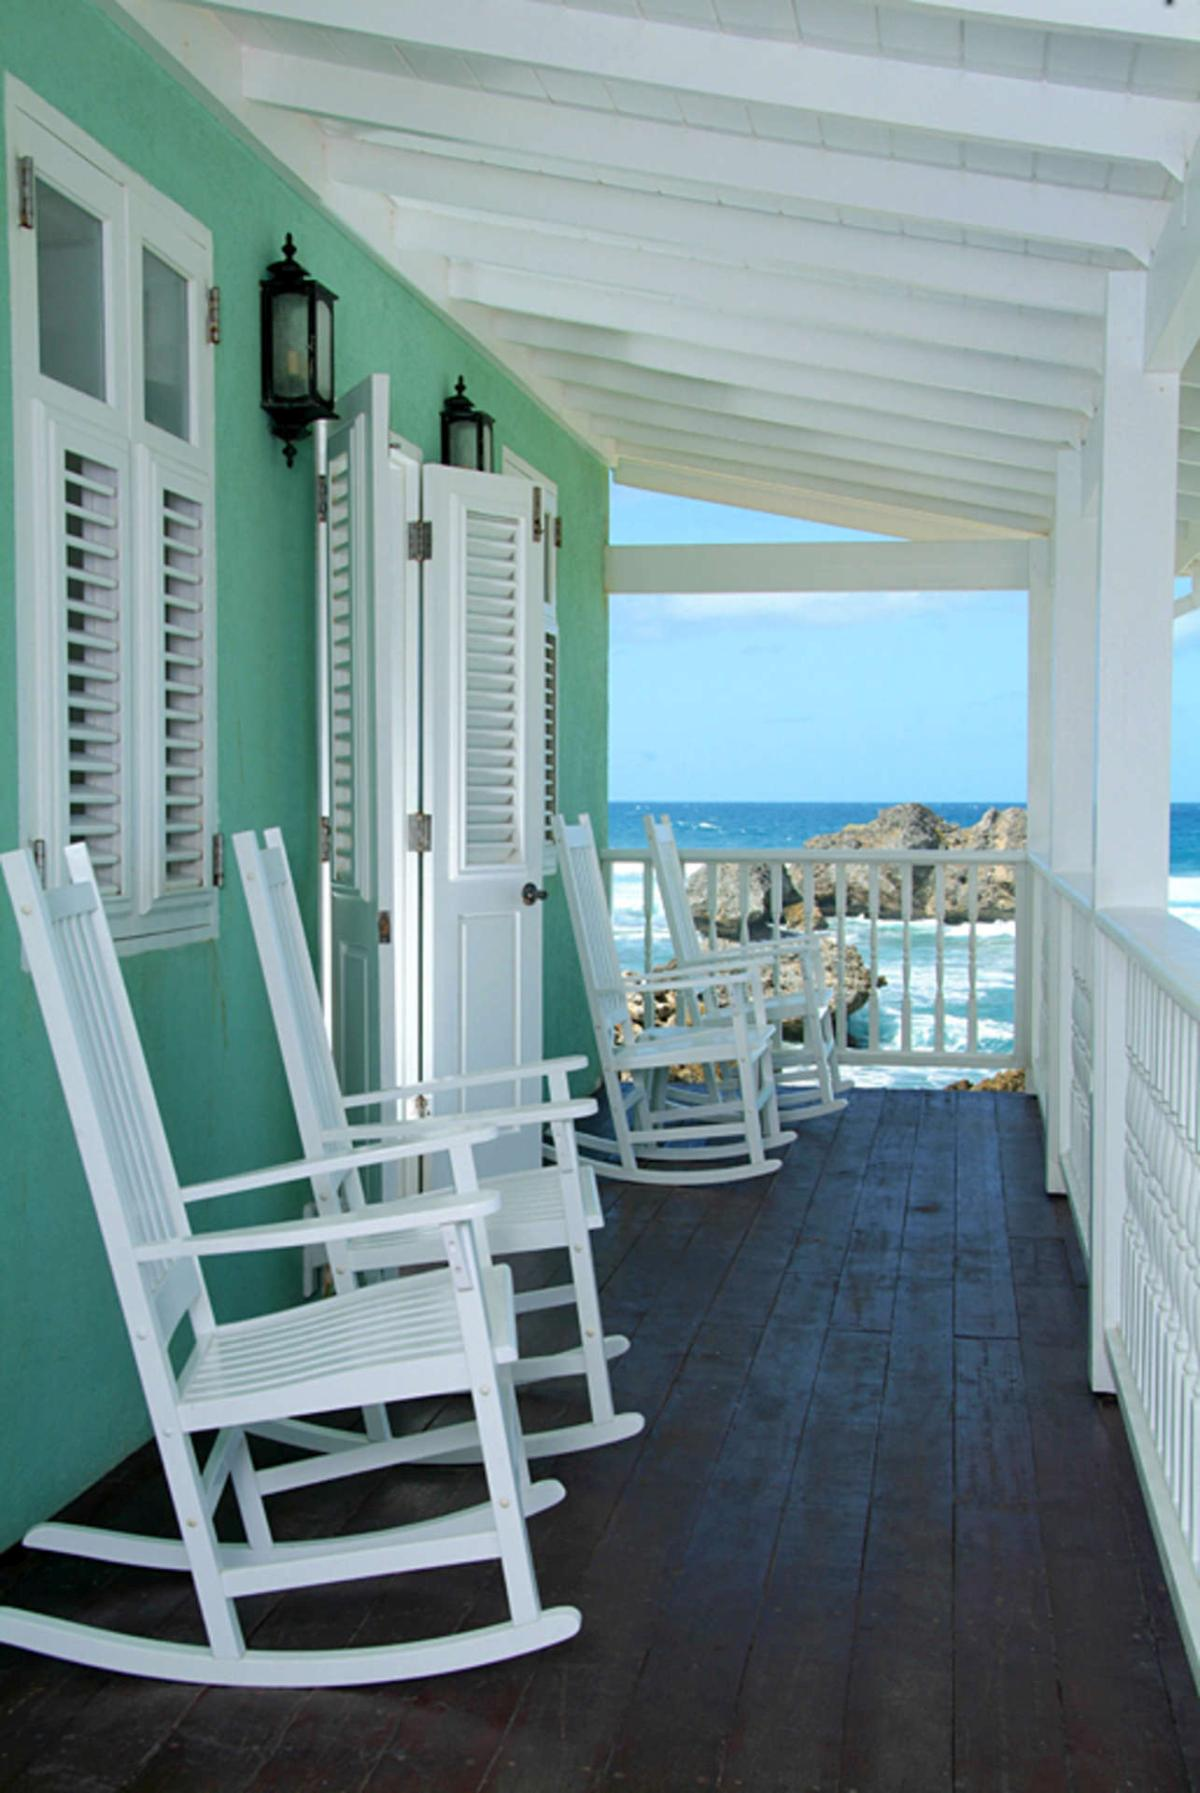 content/hotel/Barbados hotelek/The Atlantis Hotel/Accommodation/Two Bedroom Cottage Oceanview/theatlantishotel-acc-twobedroomcottageoceanview-02.jpg